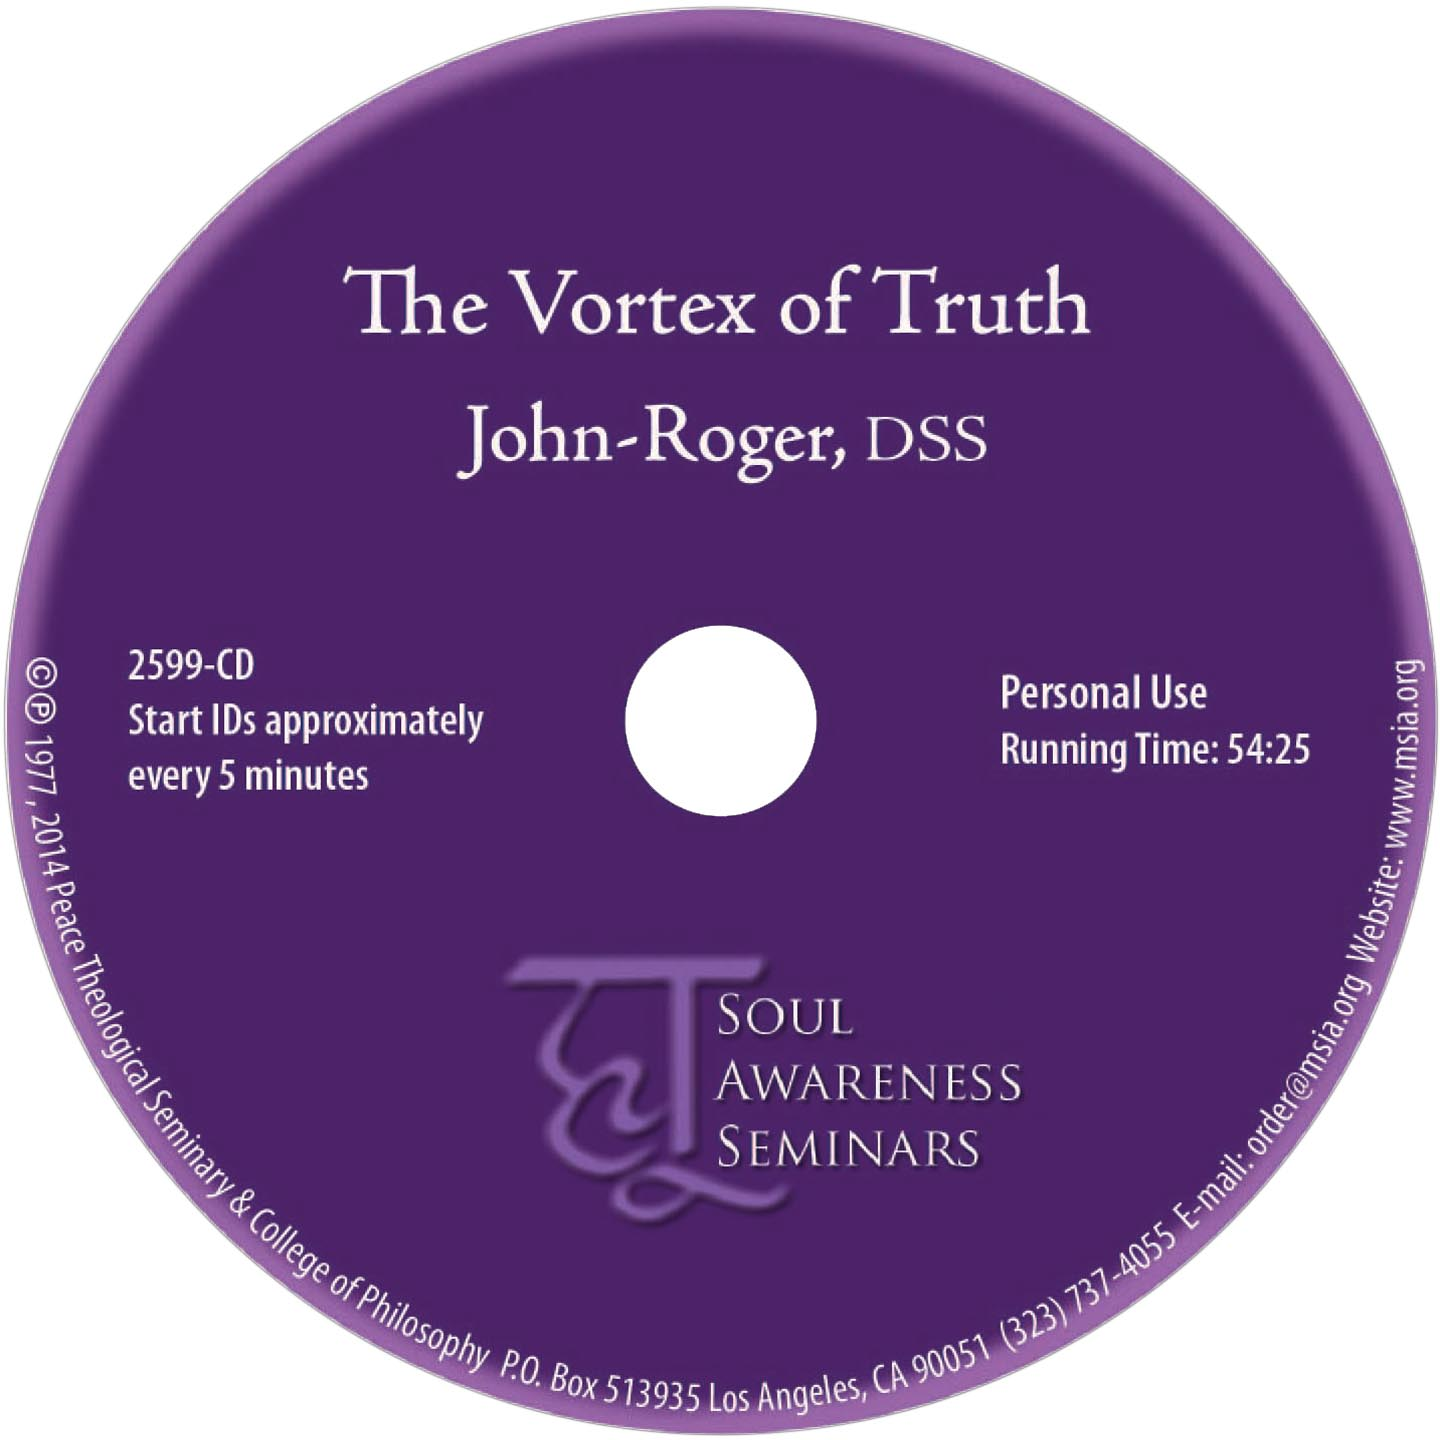 The Vortex of Truth MP3